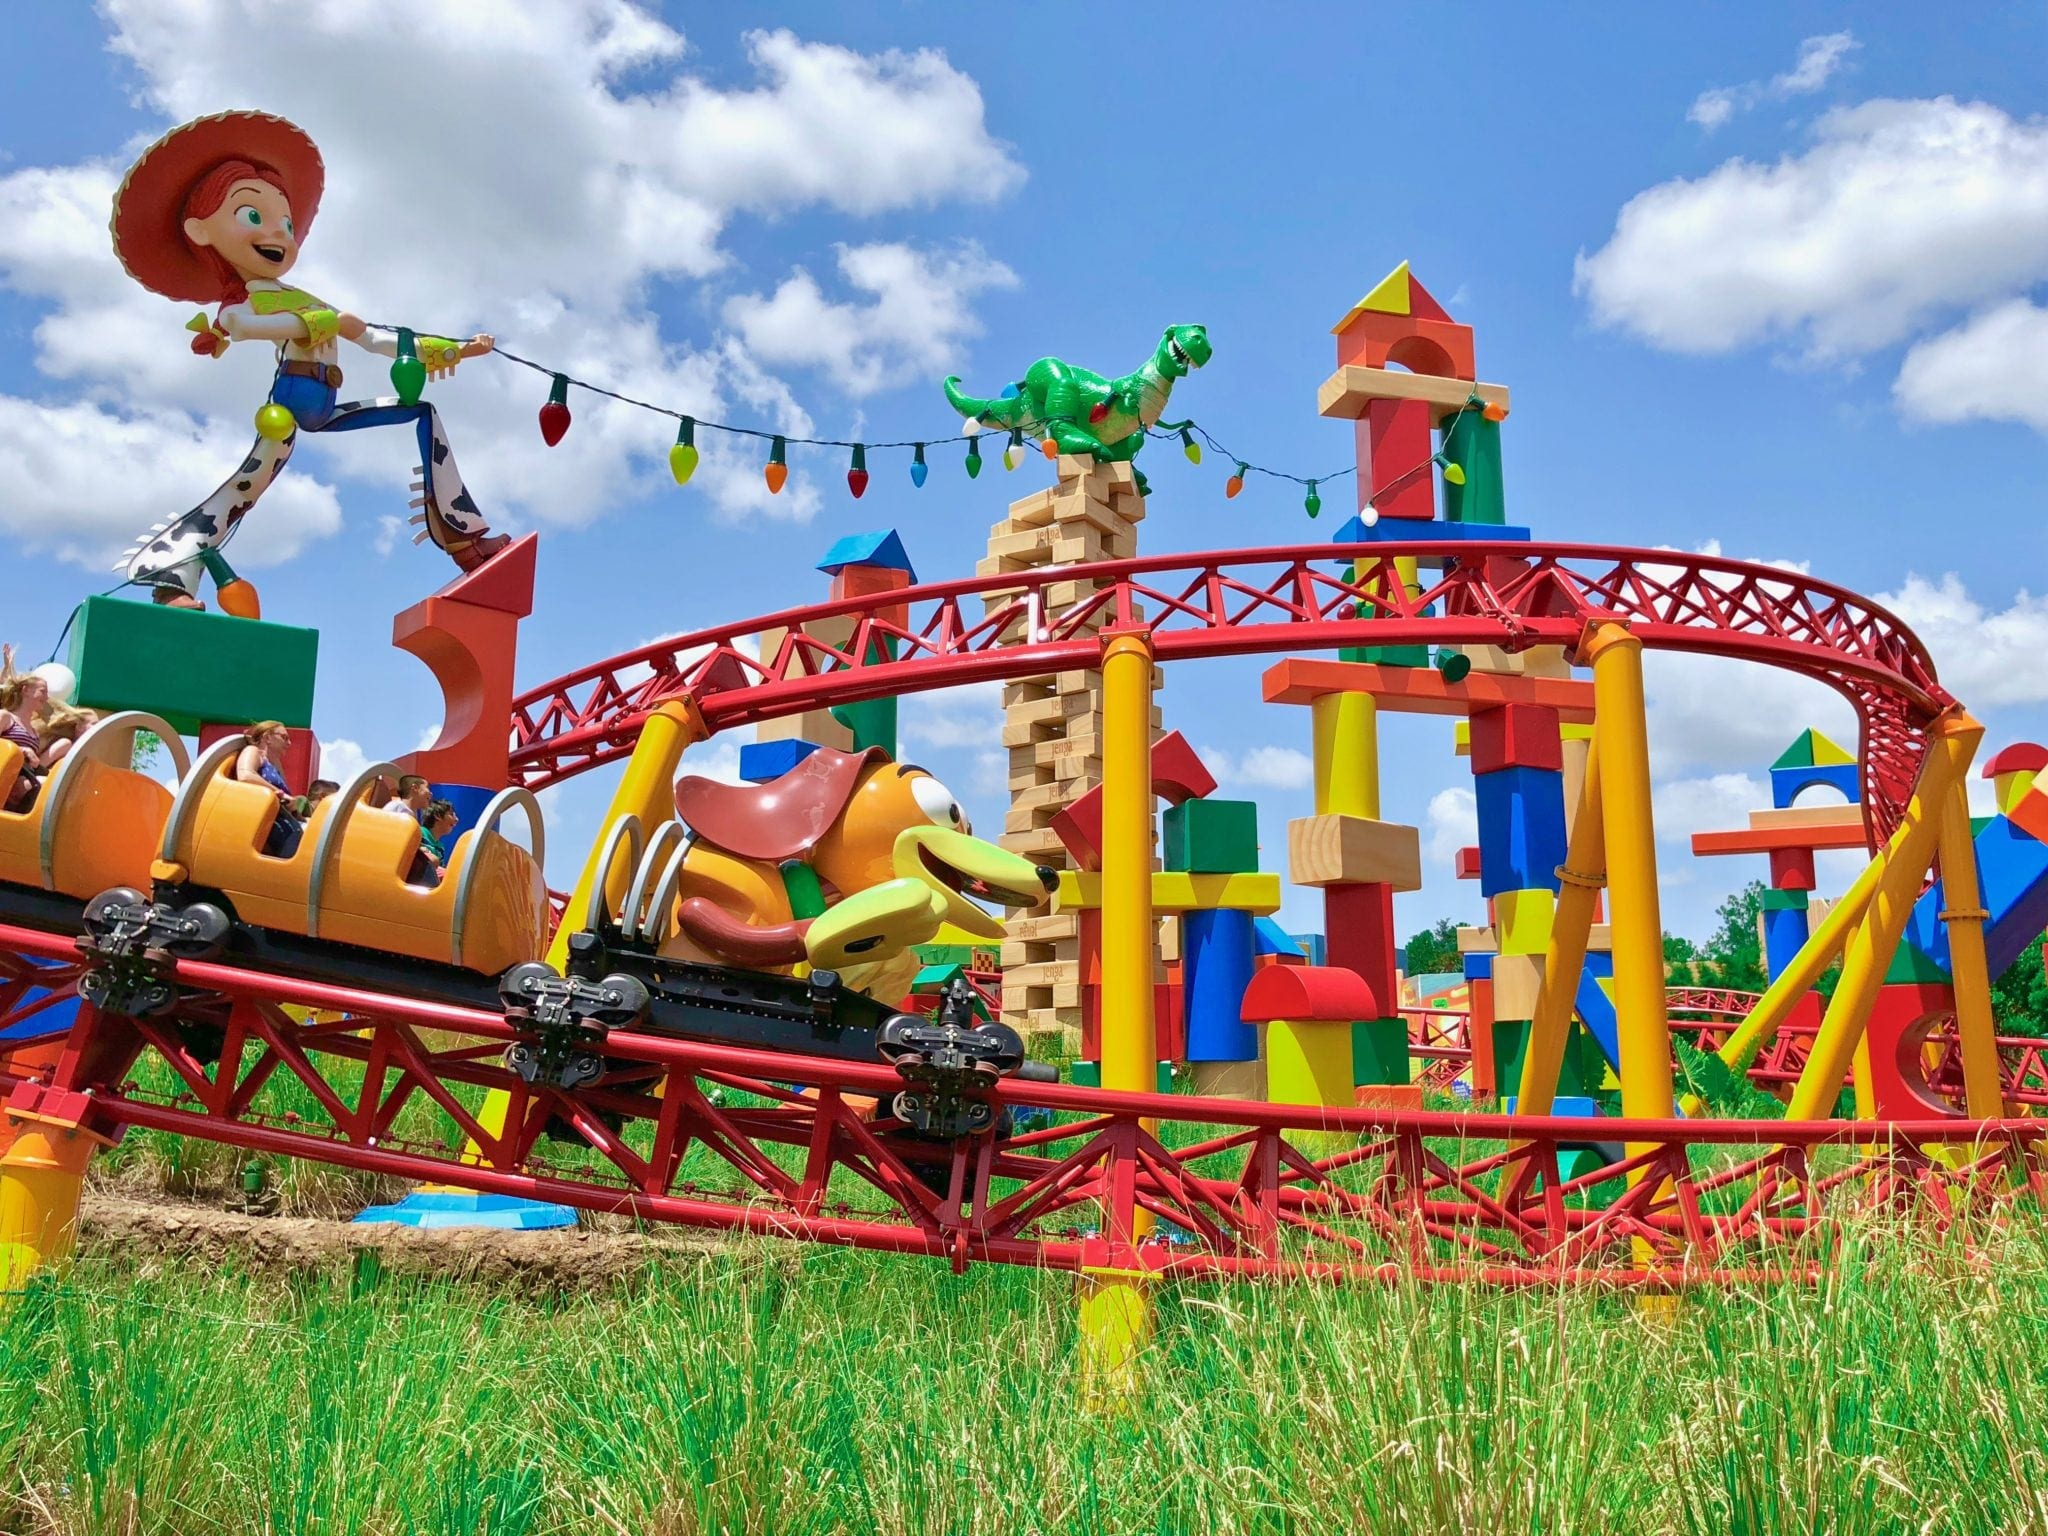 Slinky Dog Dash vs. Seven Dwarfs Mine Train